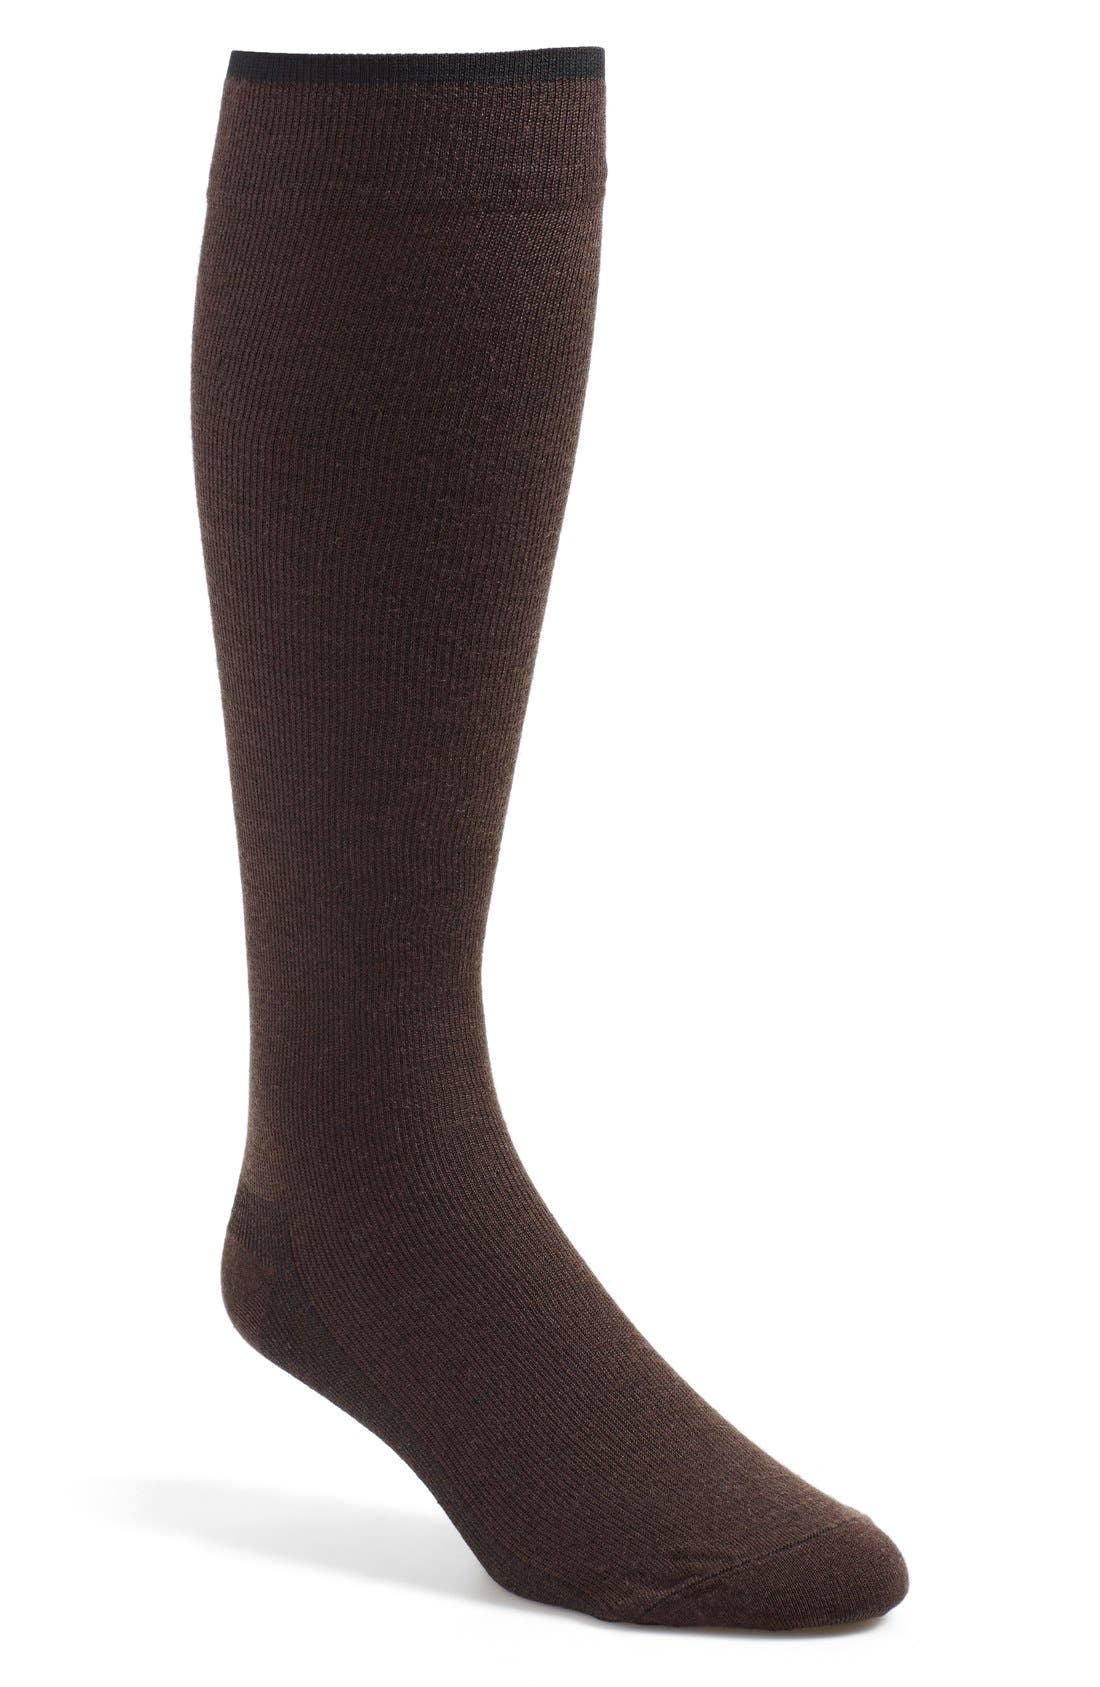 Main Image - INSIGNIA by SIGVARIS'Venturist' Over theCalf Socks